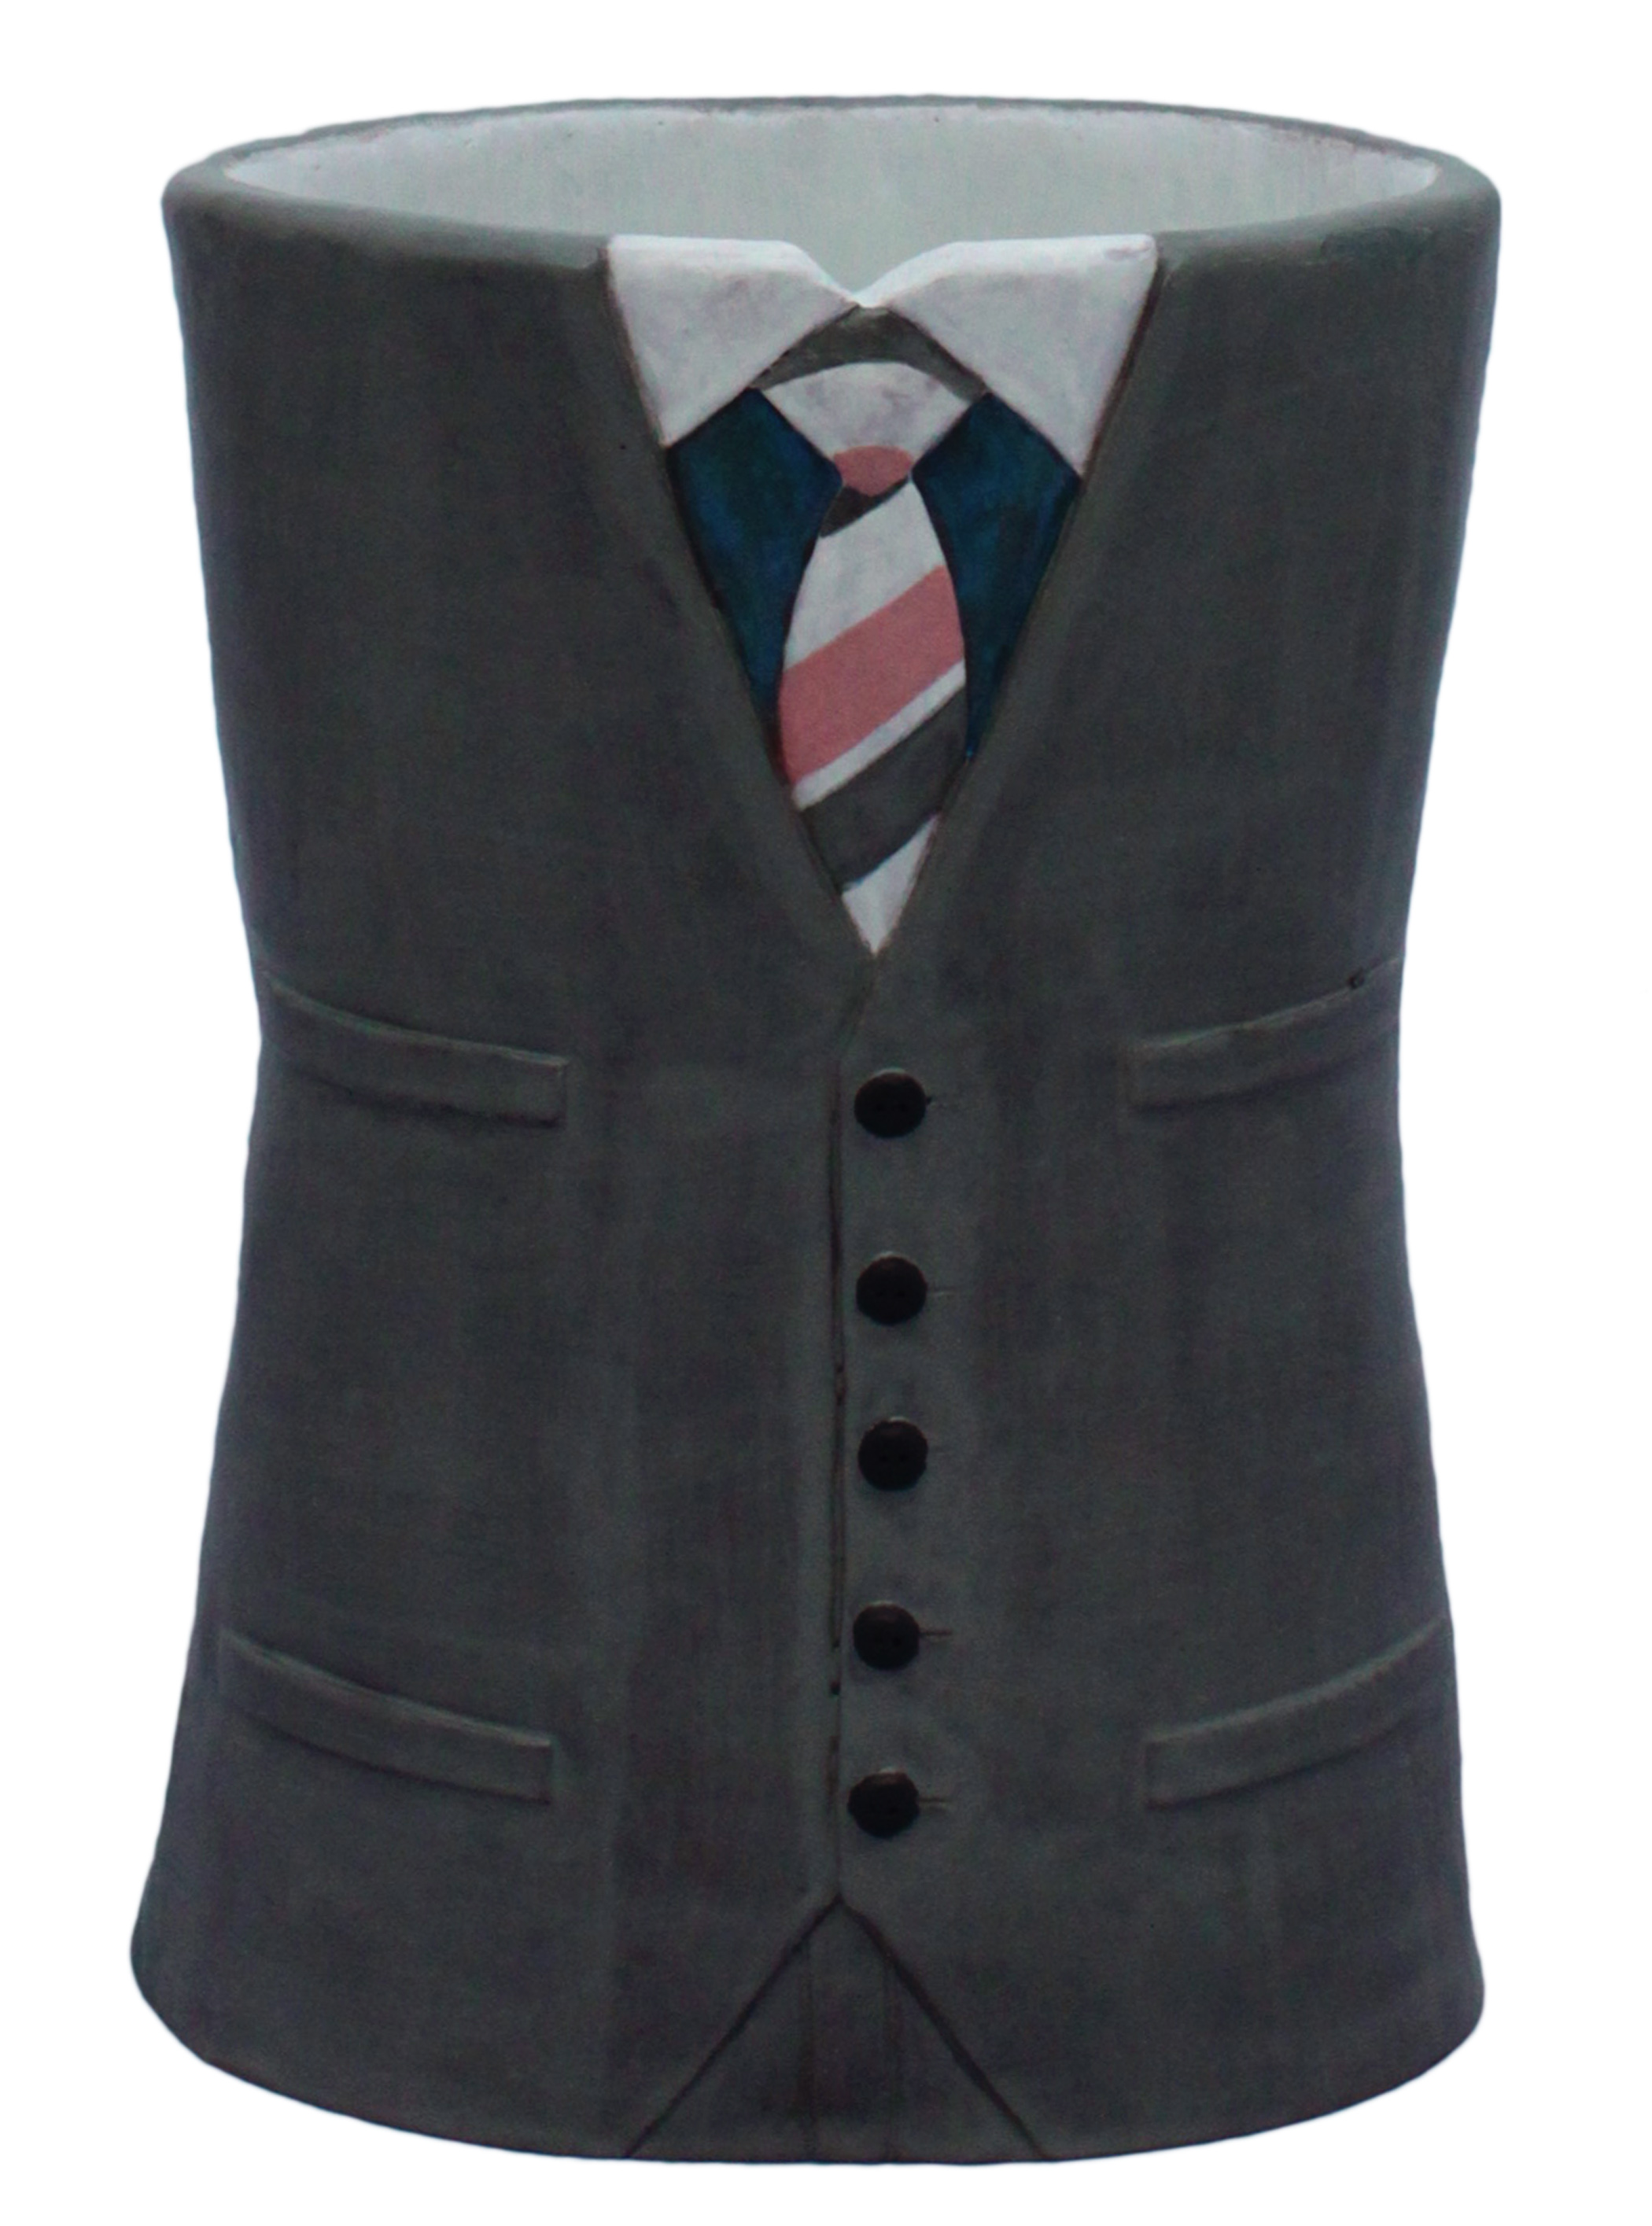 Gray Suit and Striped Tie